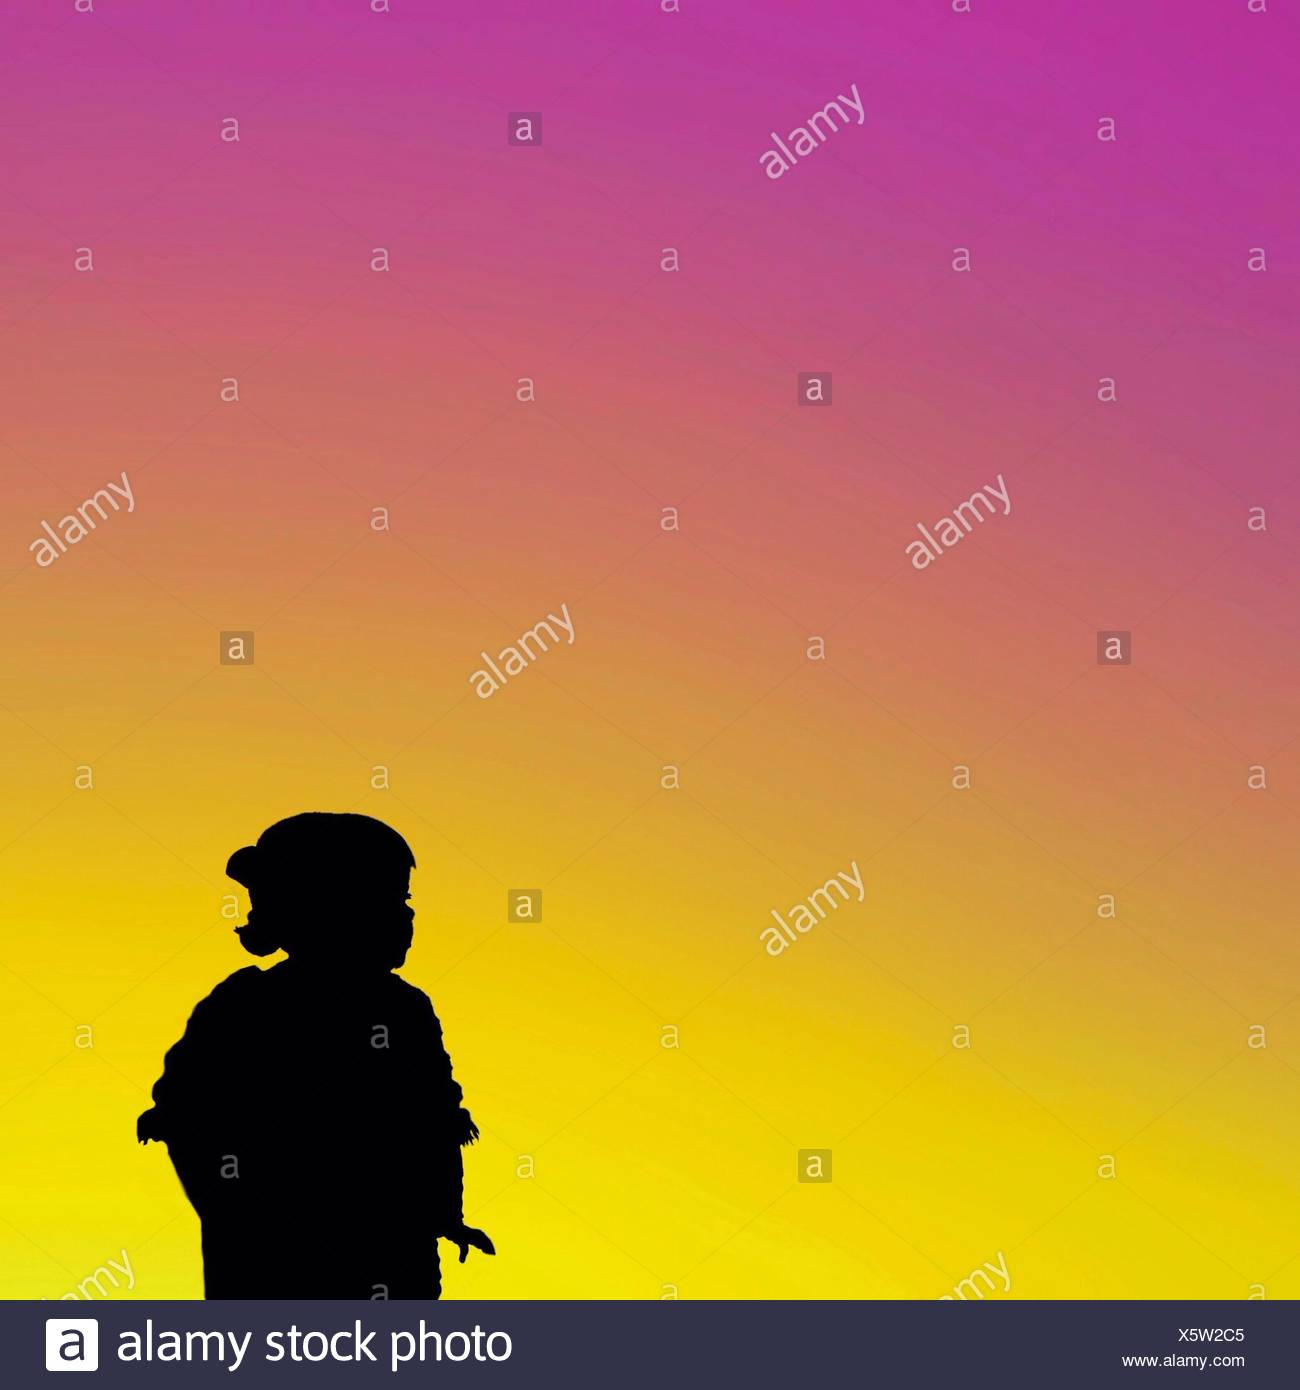 Silhouette Girl Against Dramatic Sky - Stock Image